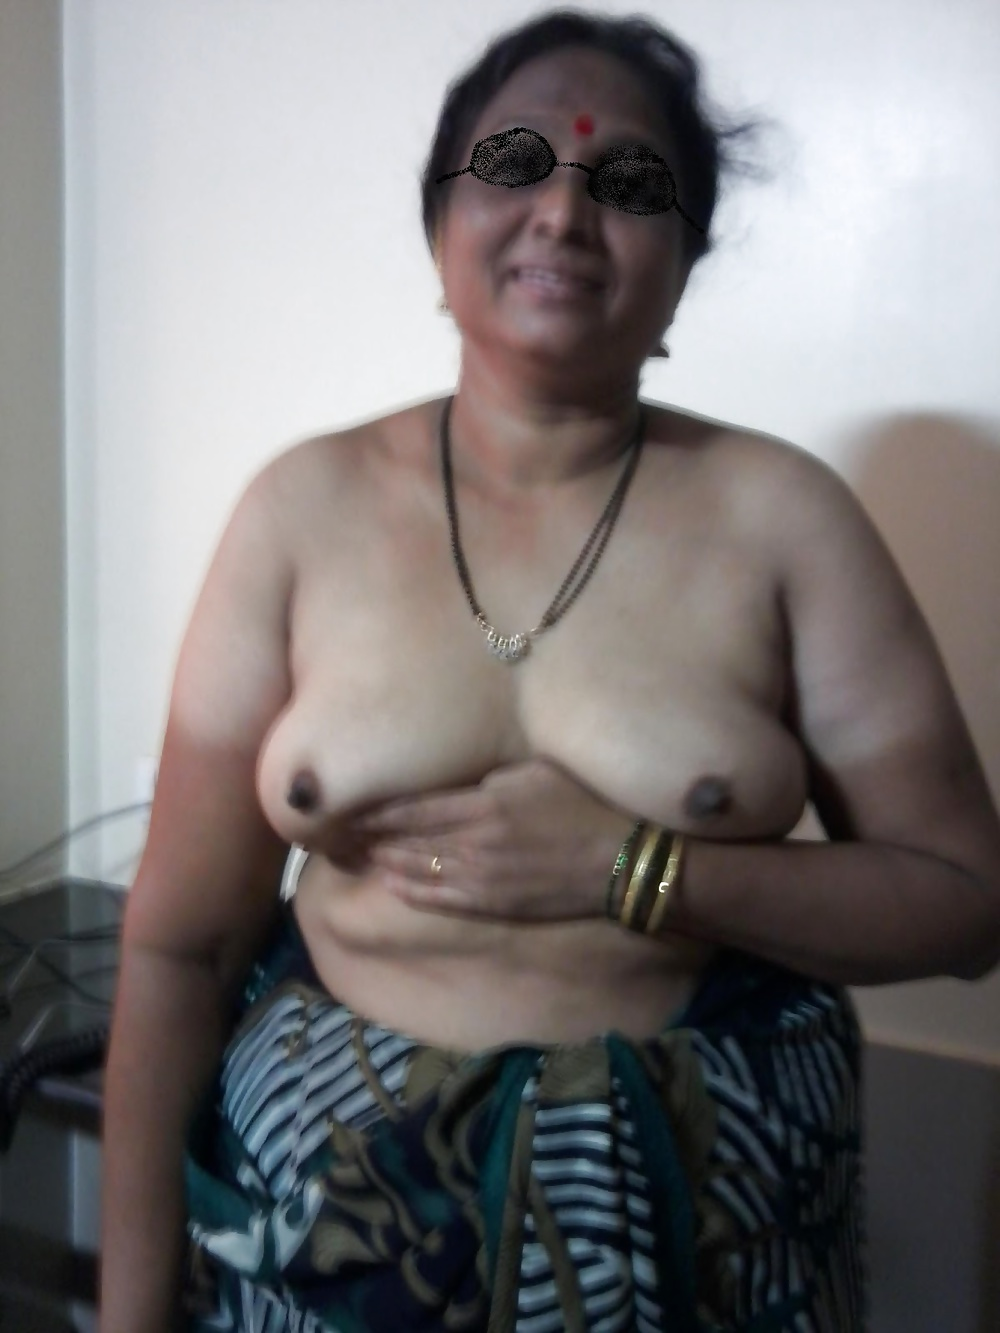 Old aunty image indian sex